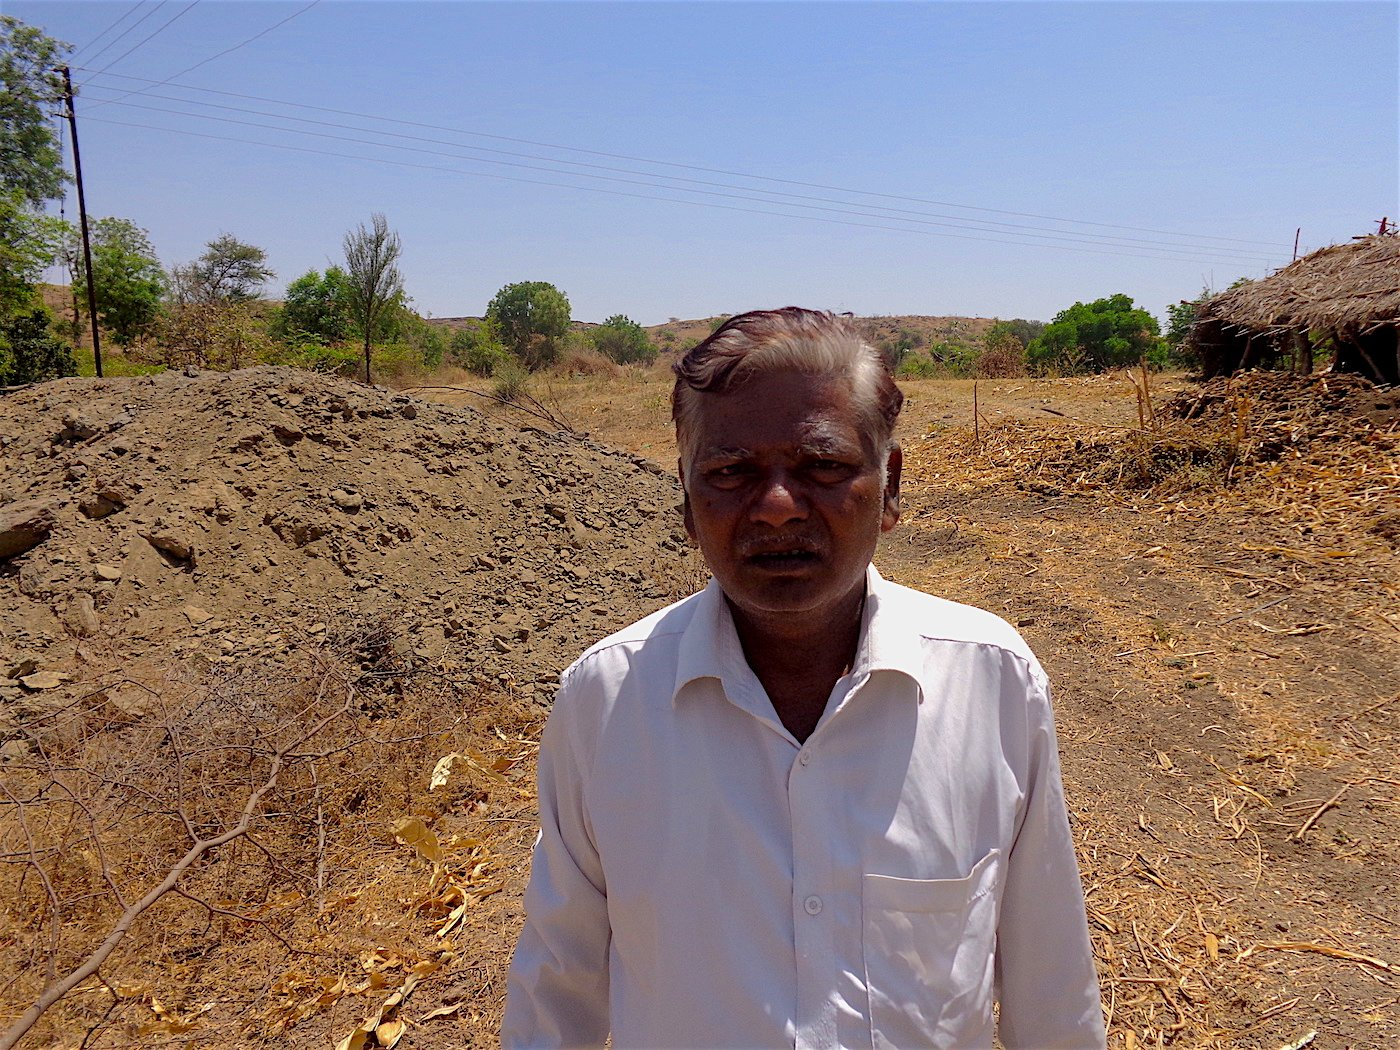 Karbhari Ramrao Jadhav: 'A powerless farmer cannot afford to take on the administration'. Parth MN